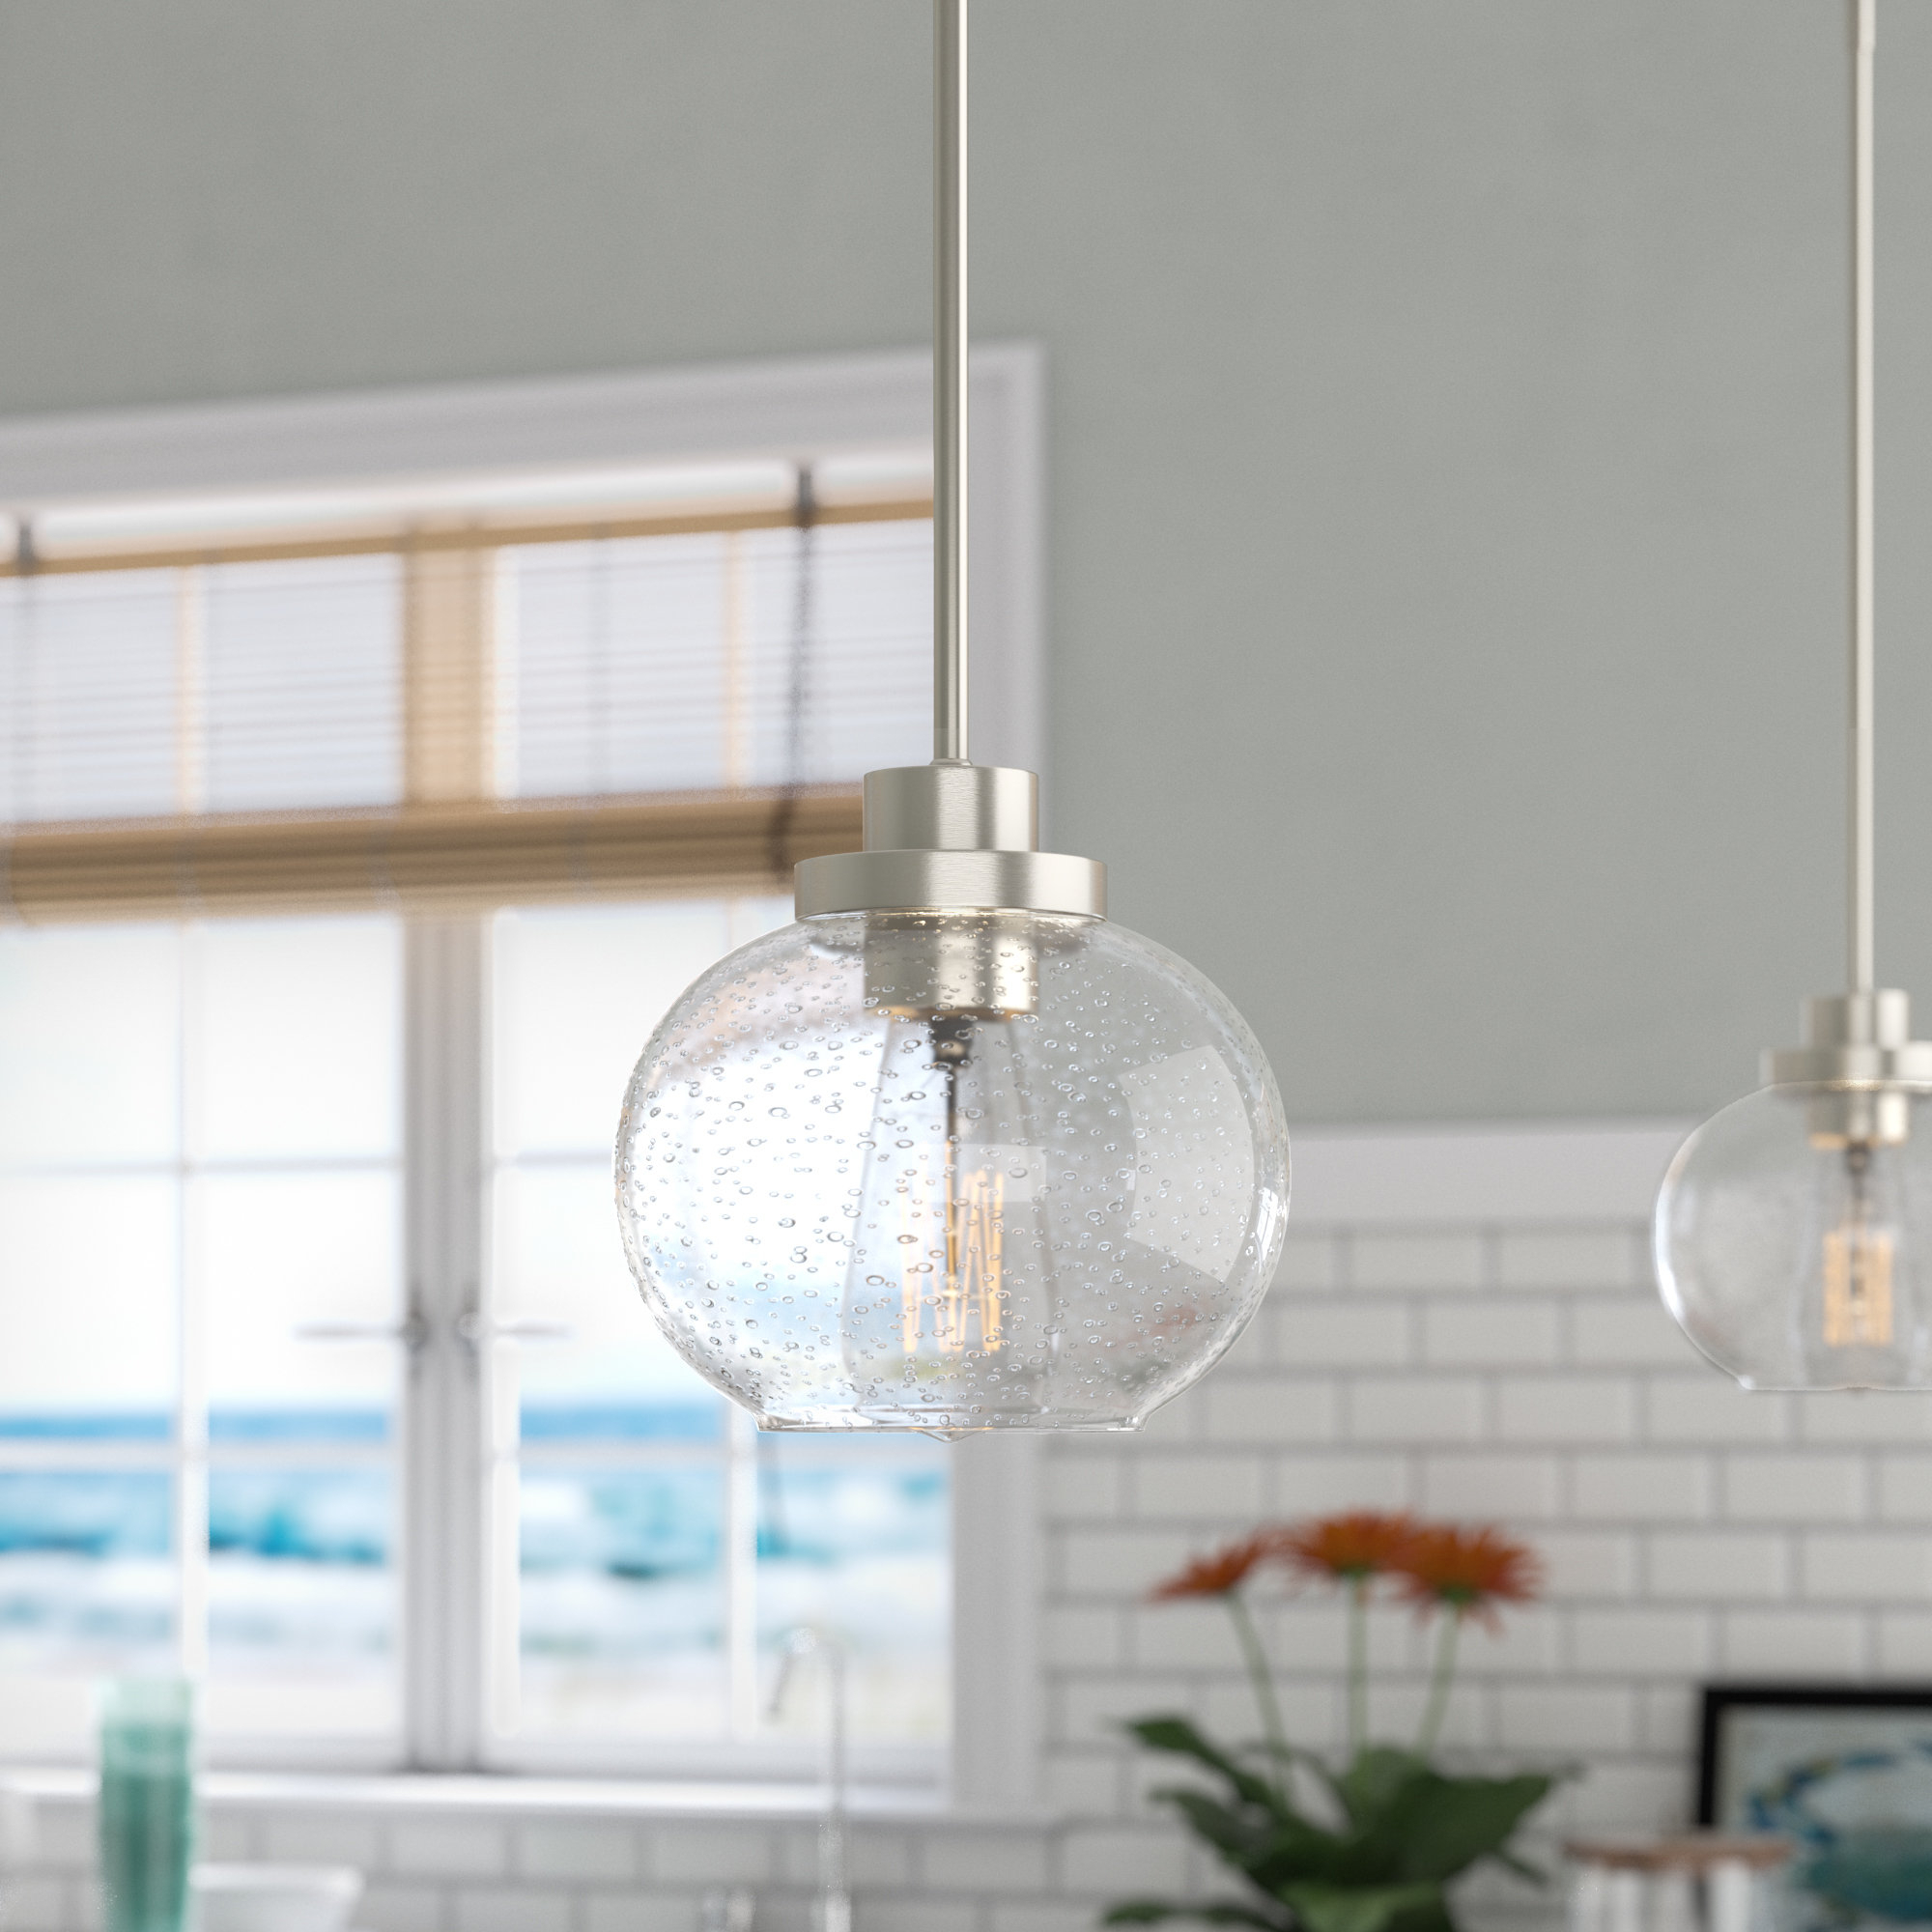 Preferred Wiesner 1 Light Globe Pendant Regarding 1 Light Globe Pendants (Gallery 3 of 20)